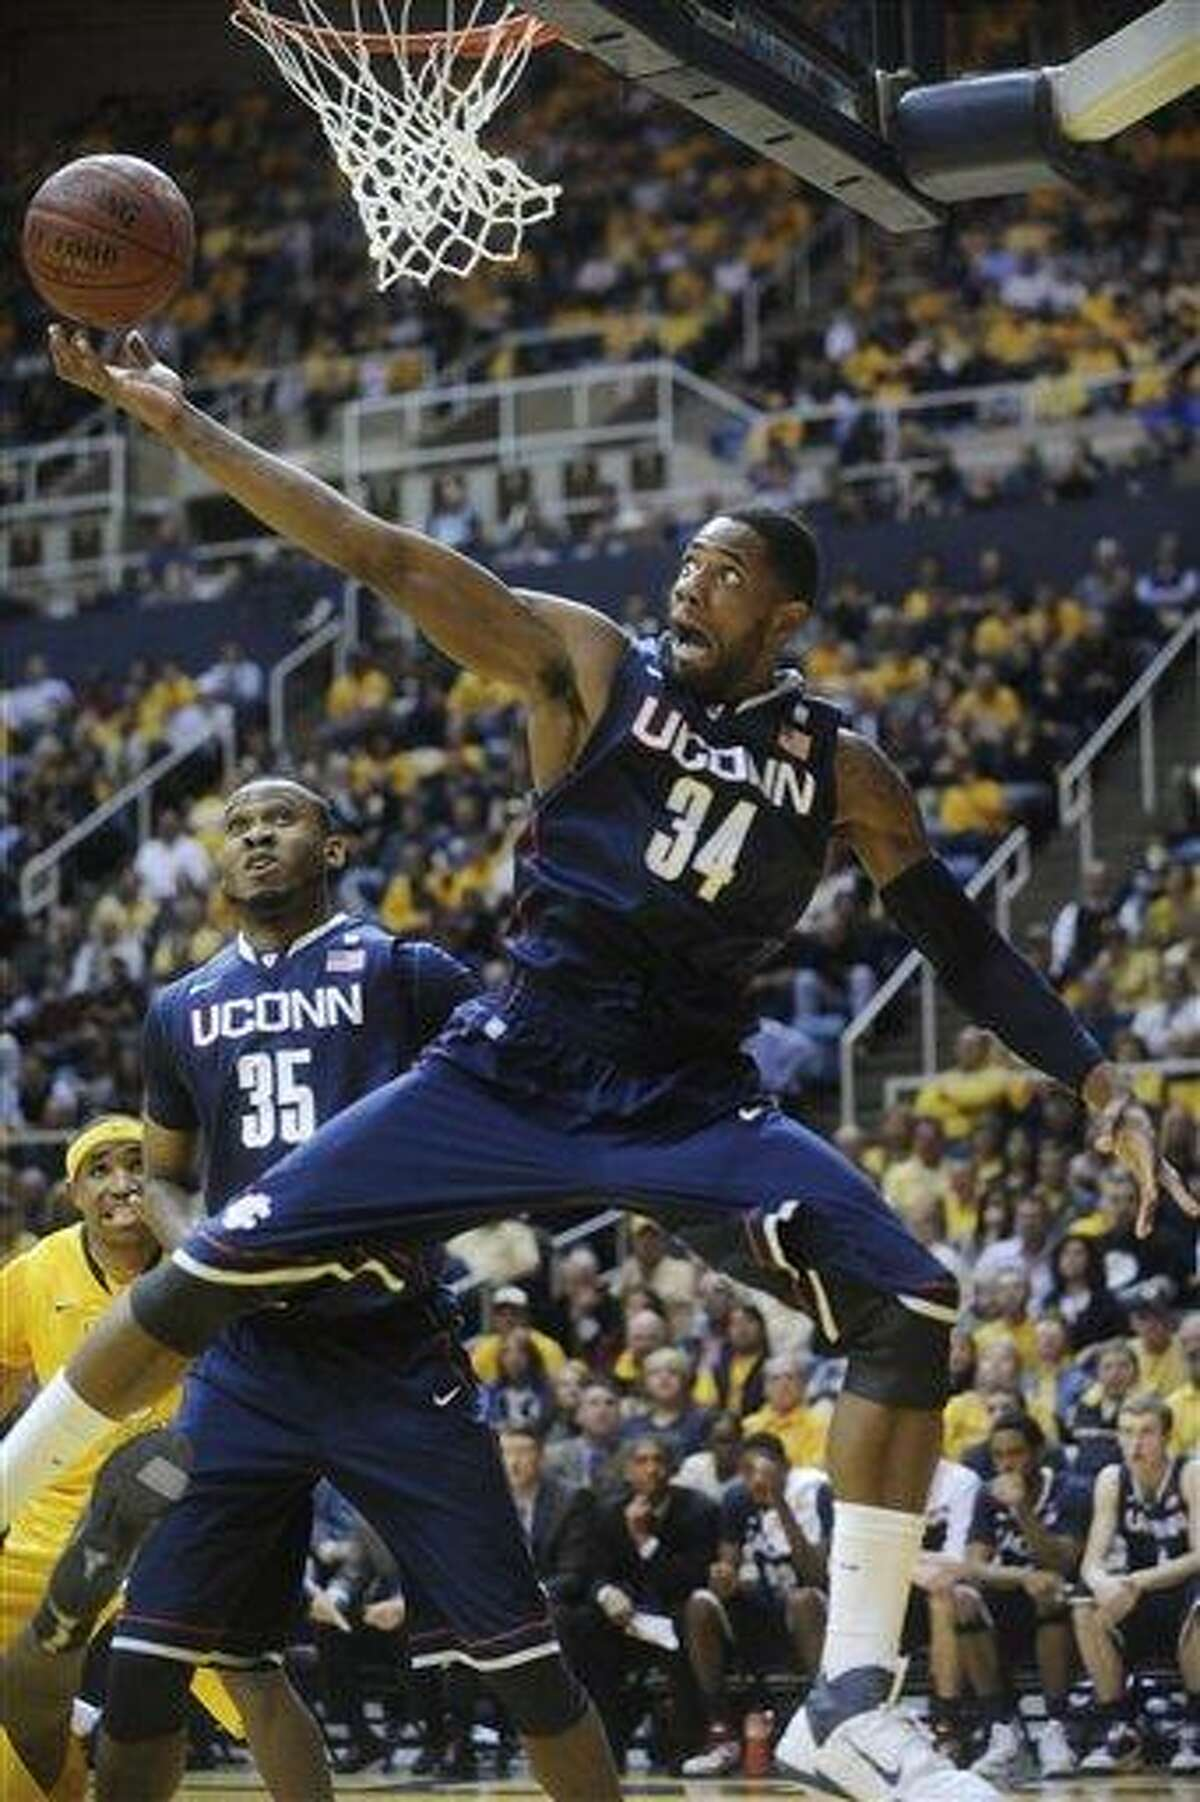 Connecticut's Alex Oriakhi (34) pulls down a rebound against West Virginia, Wednesday, March 2, 2011, during the first half of an NCAA college basketball game in Morgantown, W.Va. (AP Photo/Jeff Gentner)